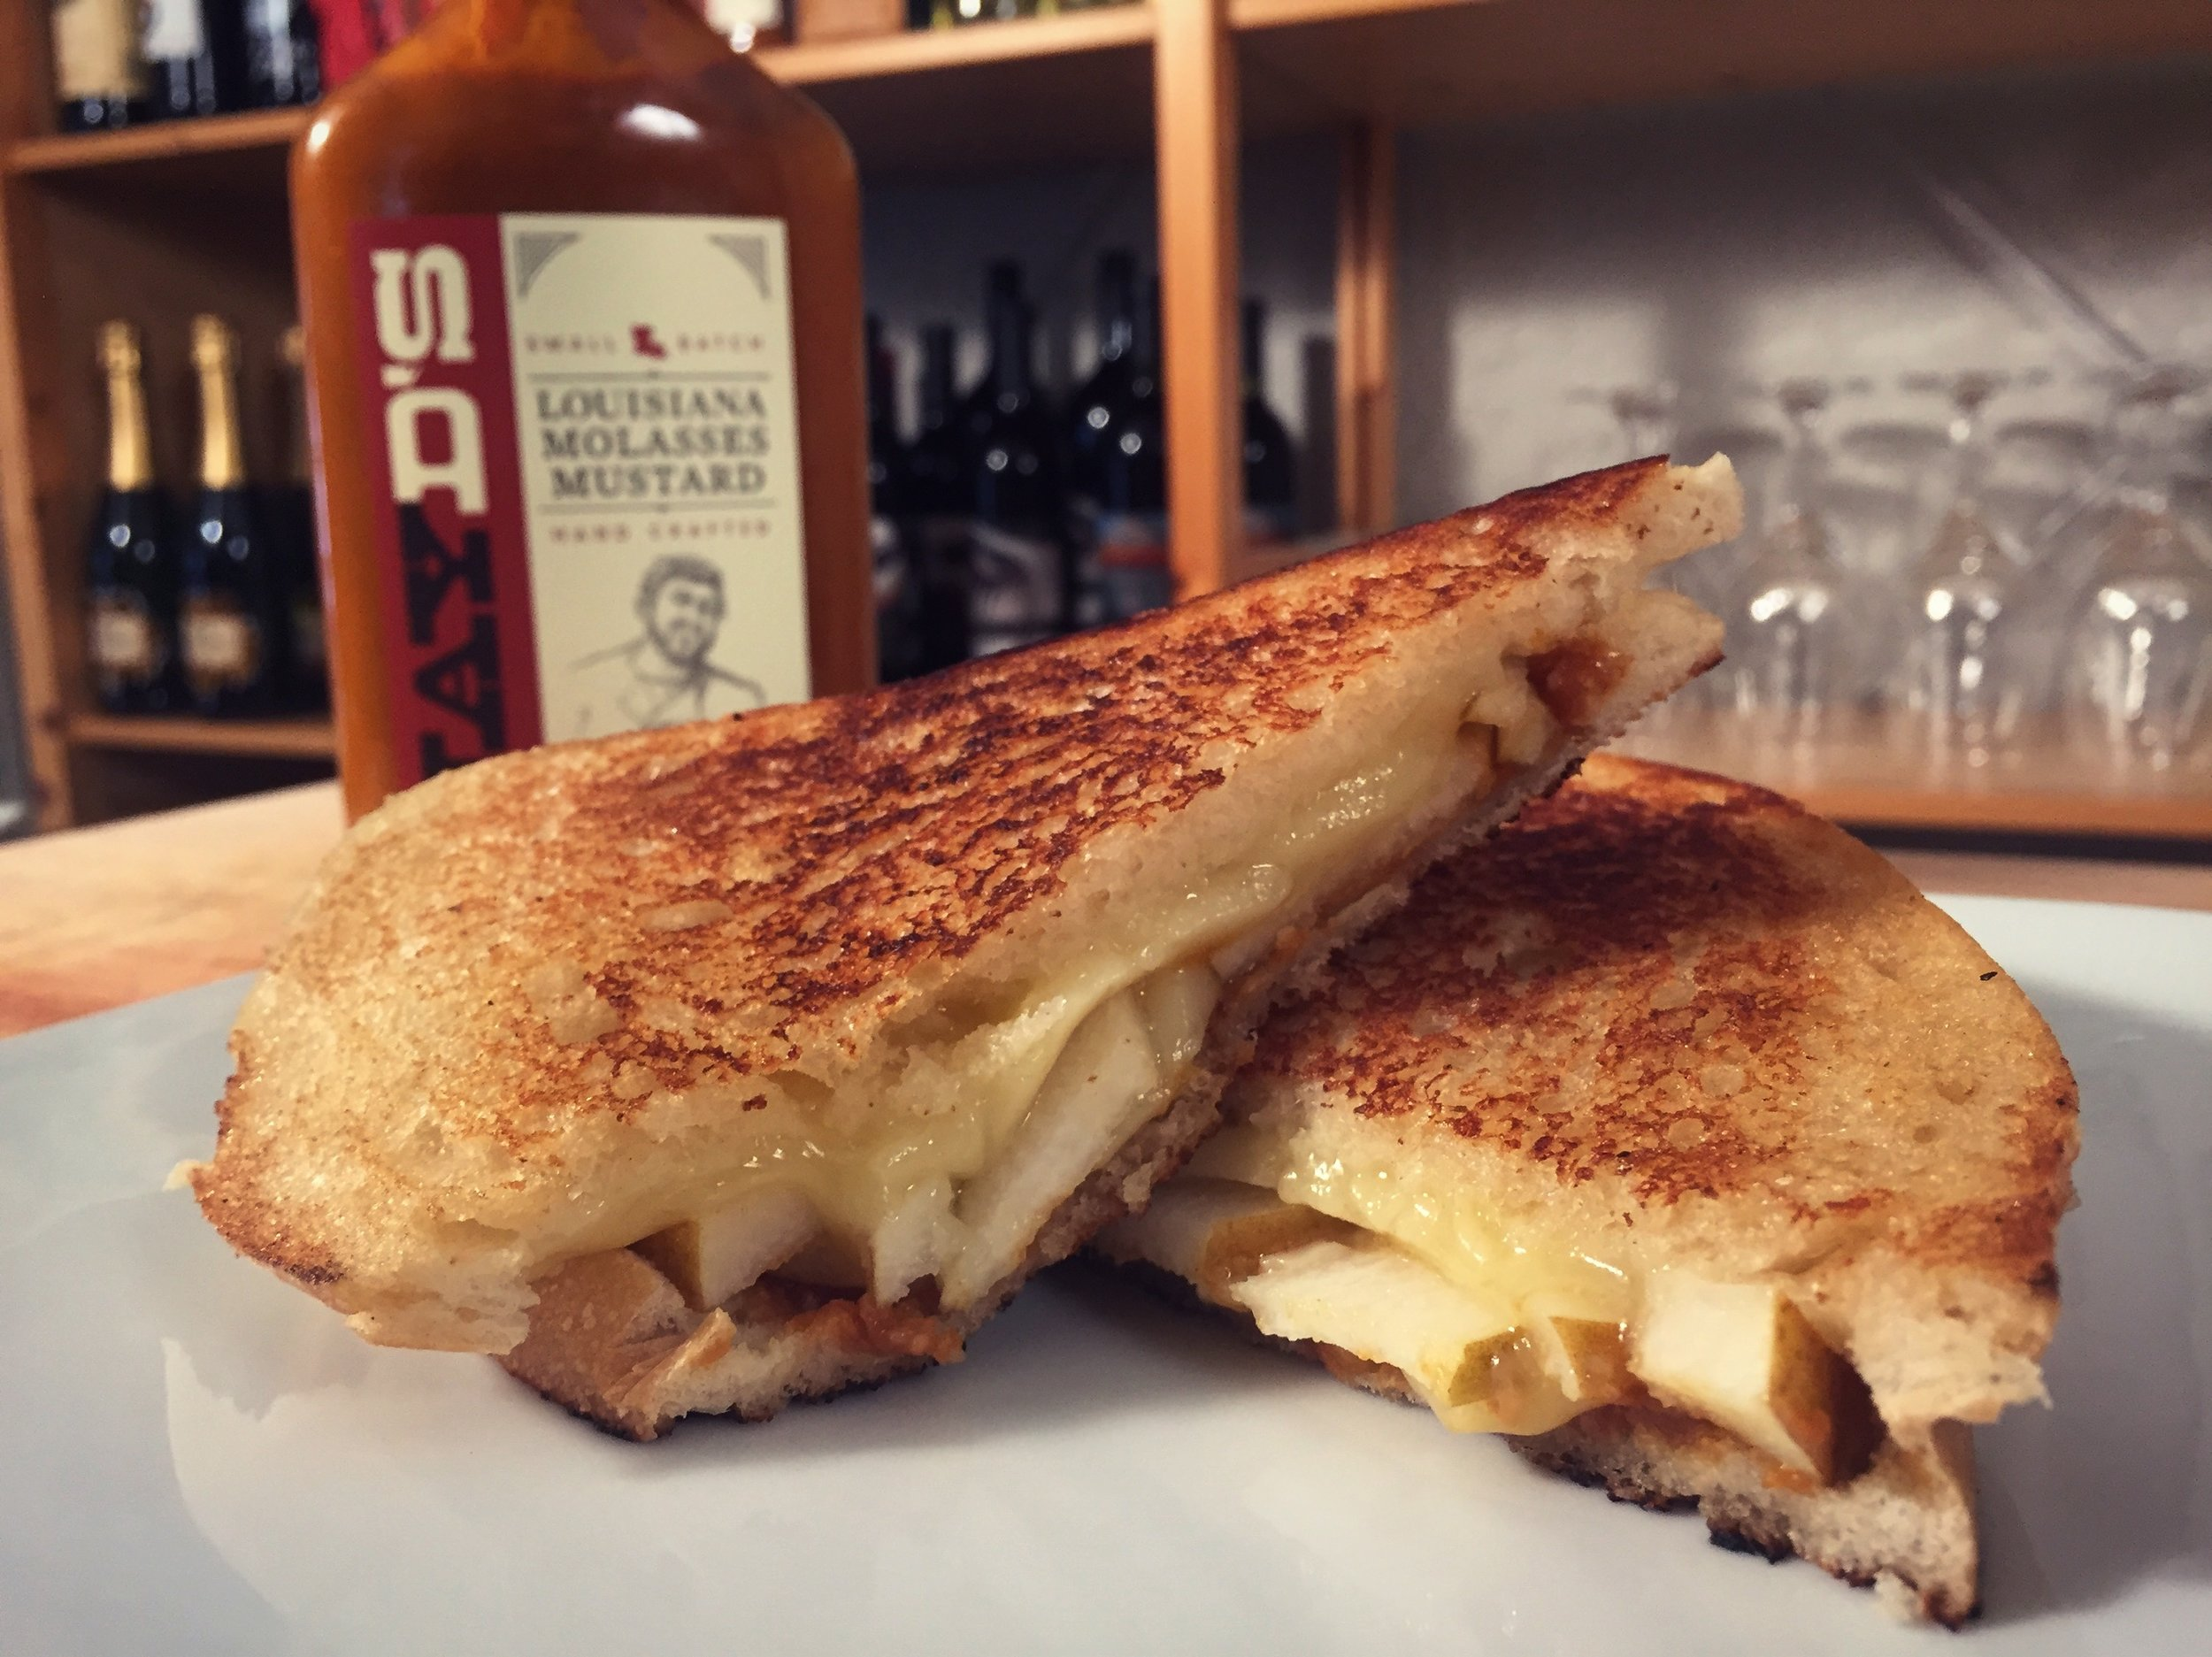 Havarti and Pear Grilled Cheese with Molasses Mustard